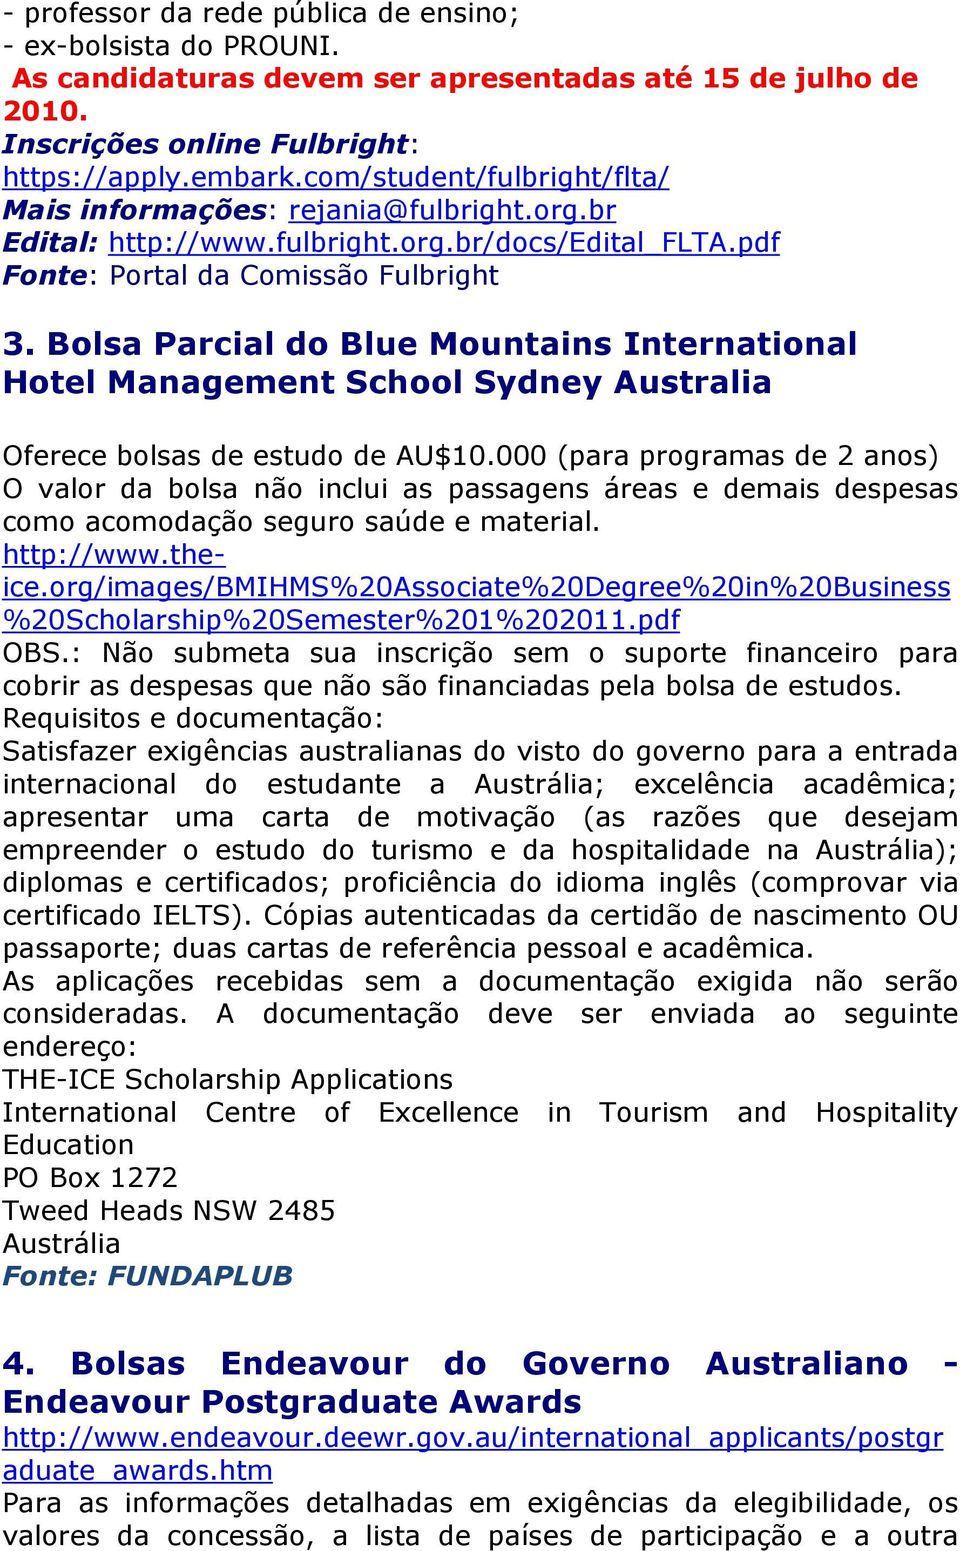 Bolsa Parcial do Blue Mountains International Hotel Management School Sydney Australia Oferece bolsas de estudo de AU$10.